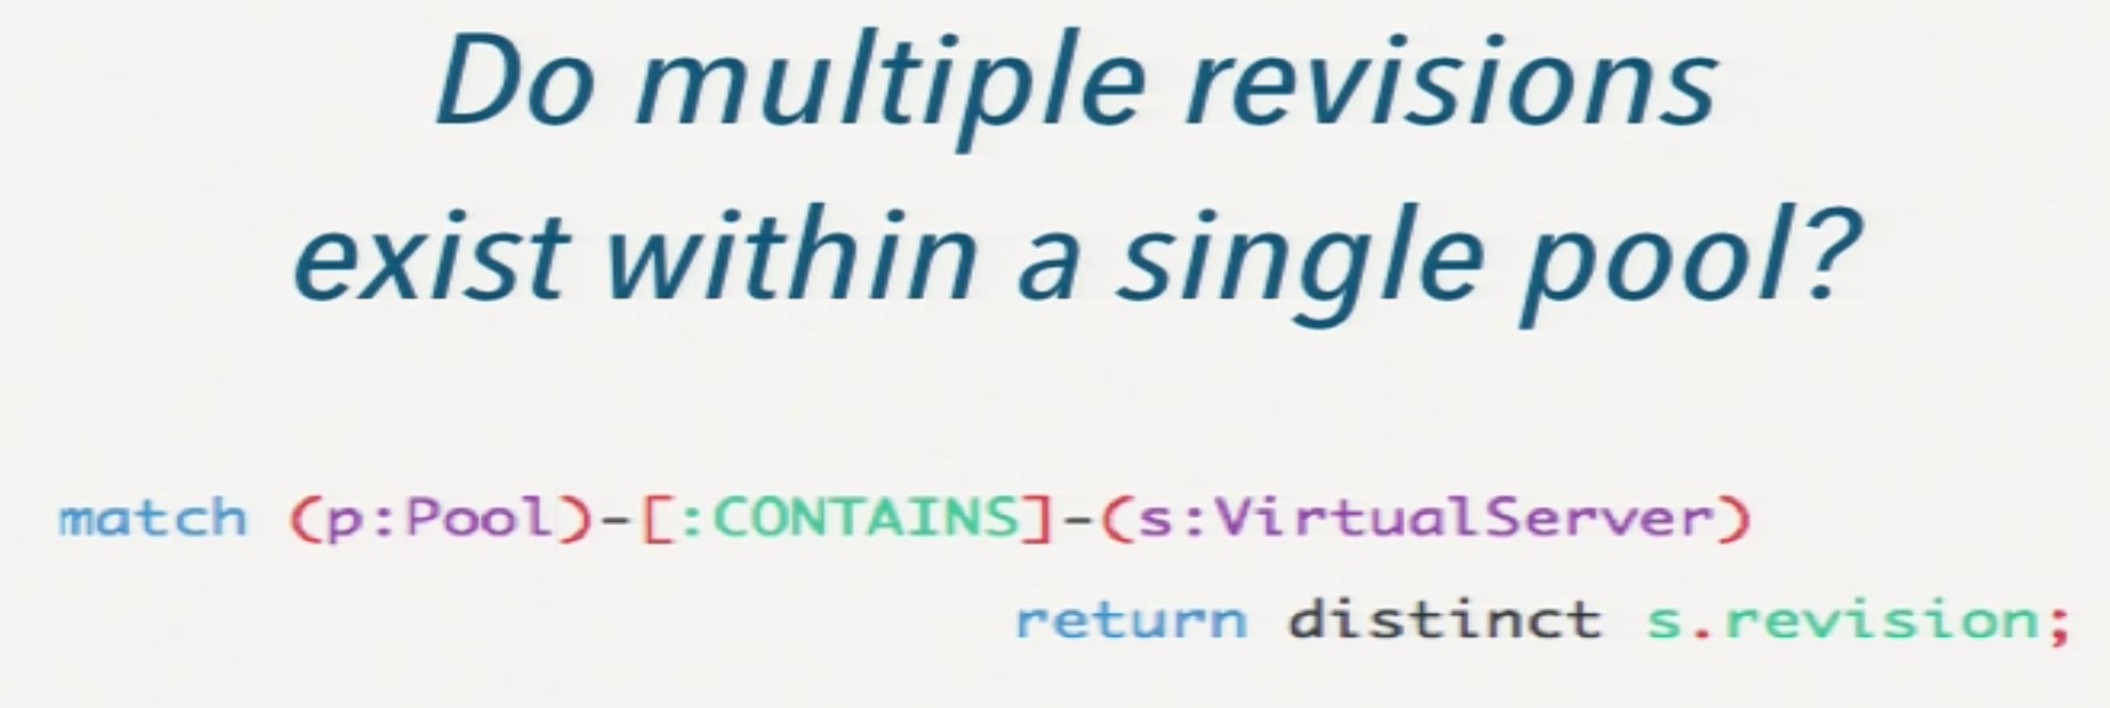 A Cypher Query to Determine If Multiple Revisions Exist within a Single Pool